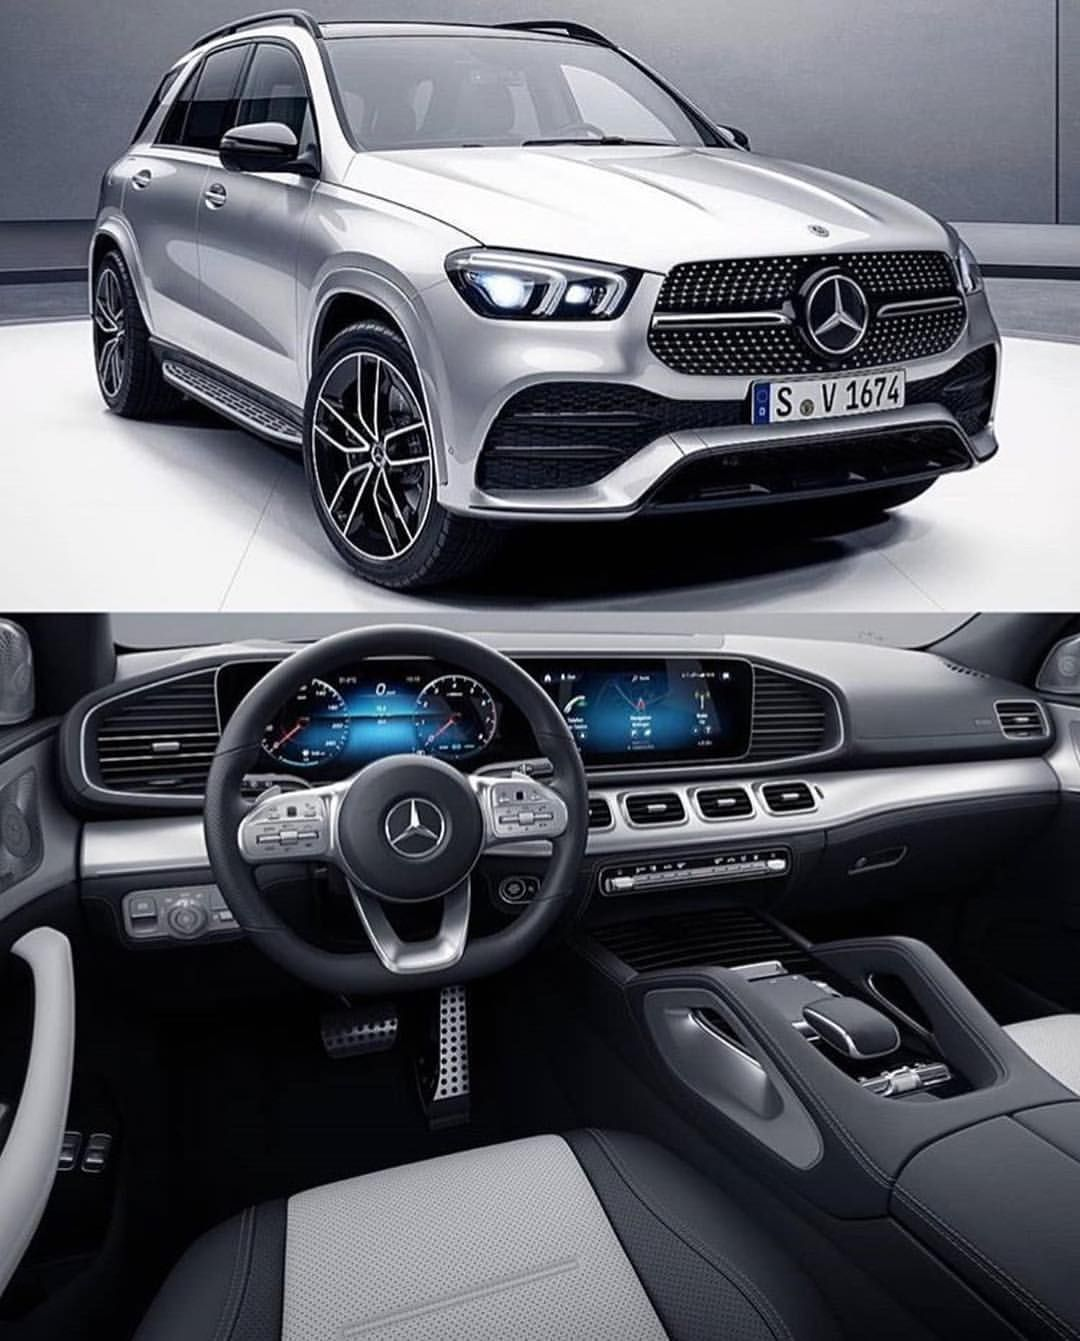 Mercedes Maybach On Instagram New Mercedes Gle Mercedesbenz Gle Dubai Benz Mercedes Maybach New Mercedes Mercedes Benz Suv